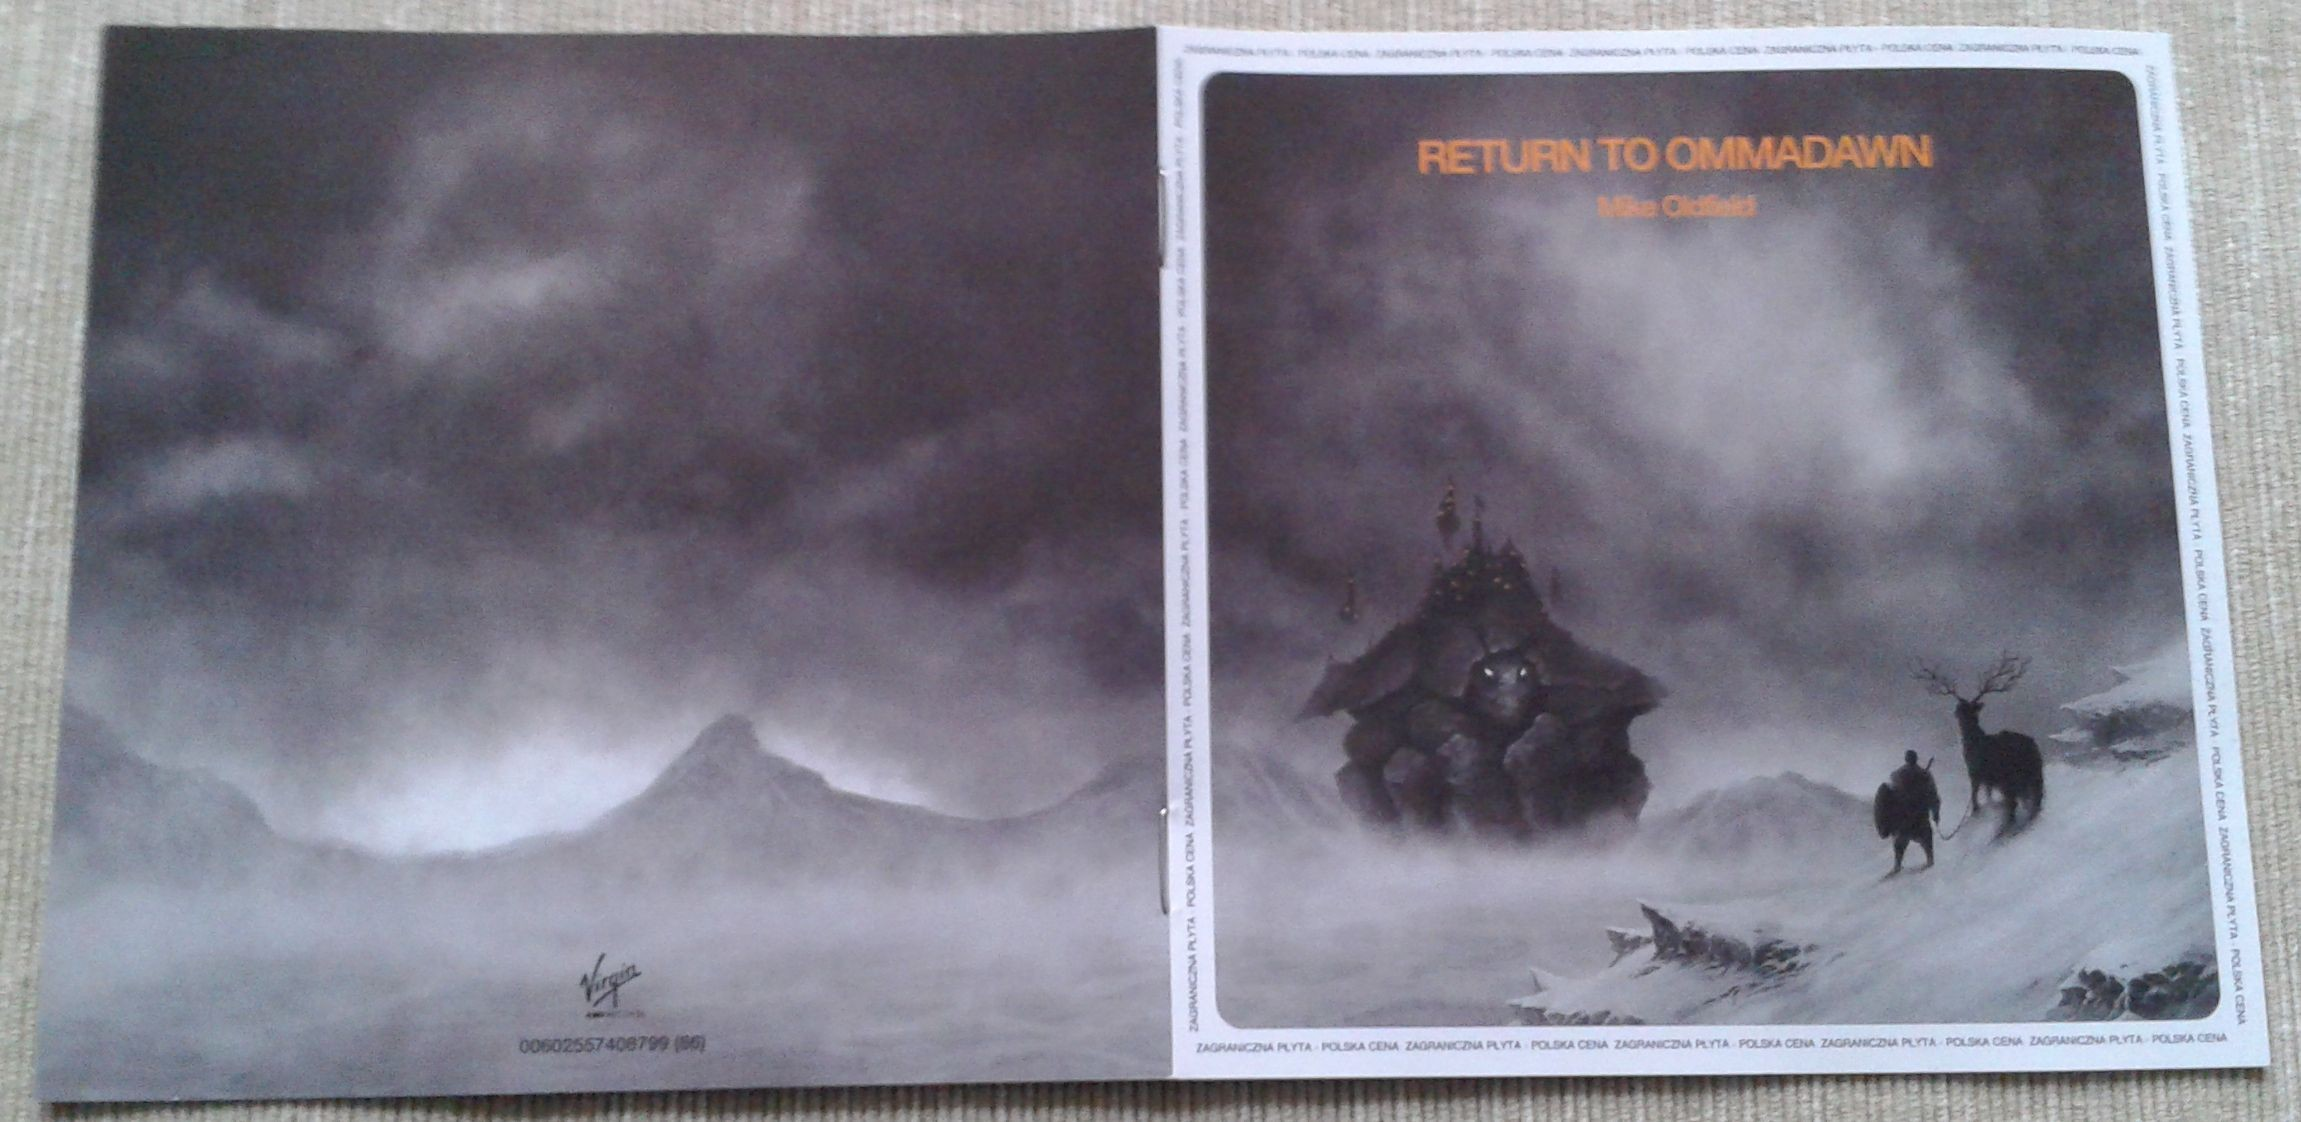 5. Return to Ommadawn booklet 1.jpg